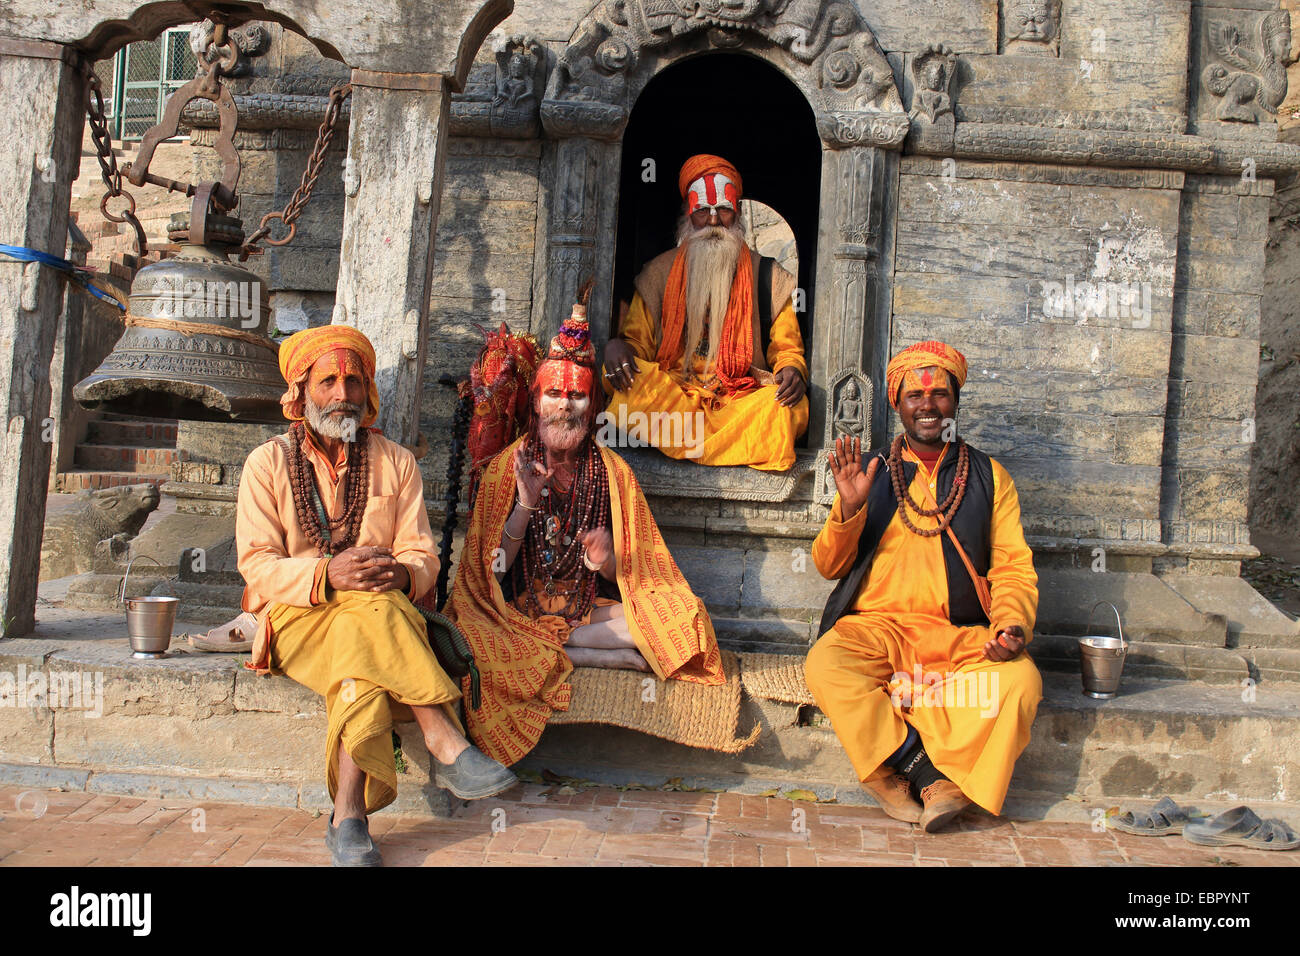 four sadhus sitting at a temple, Nepal, Kathmandu, Pashupatinath - Stock Image